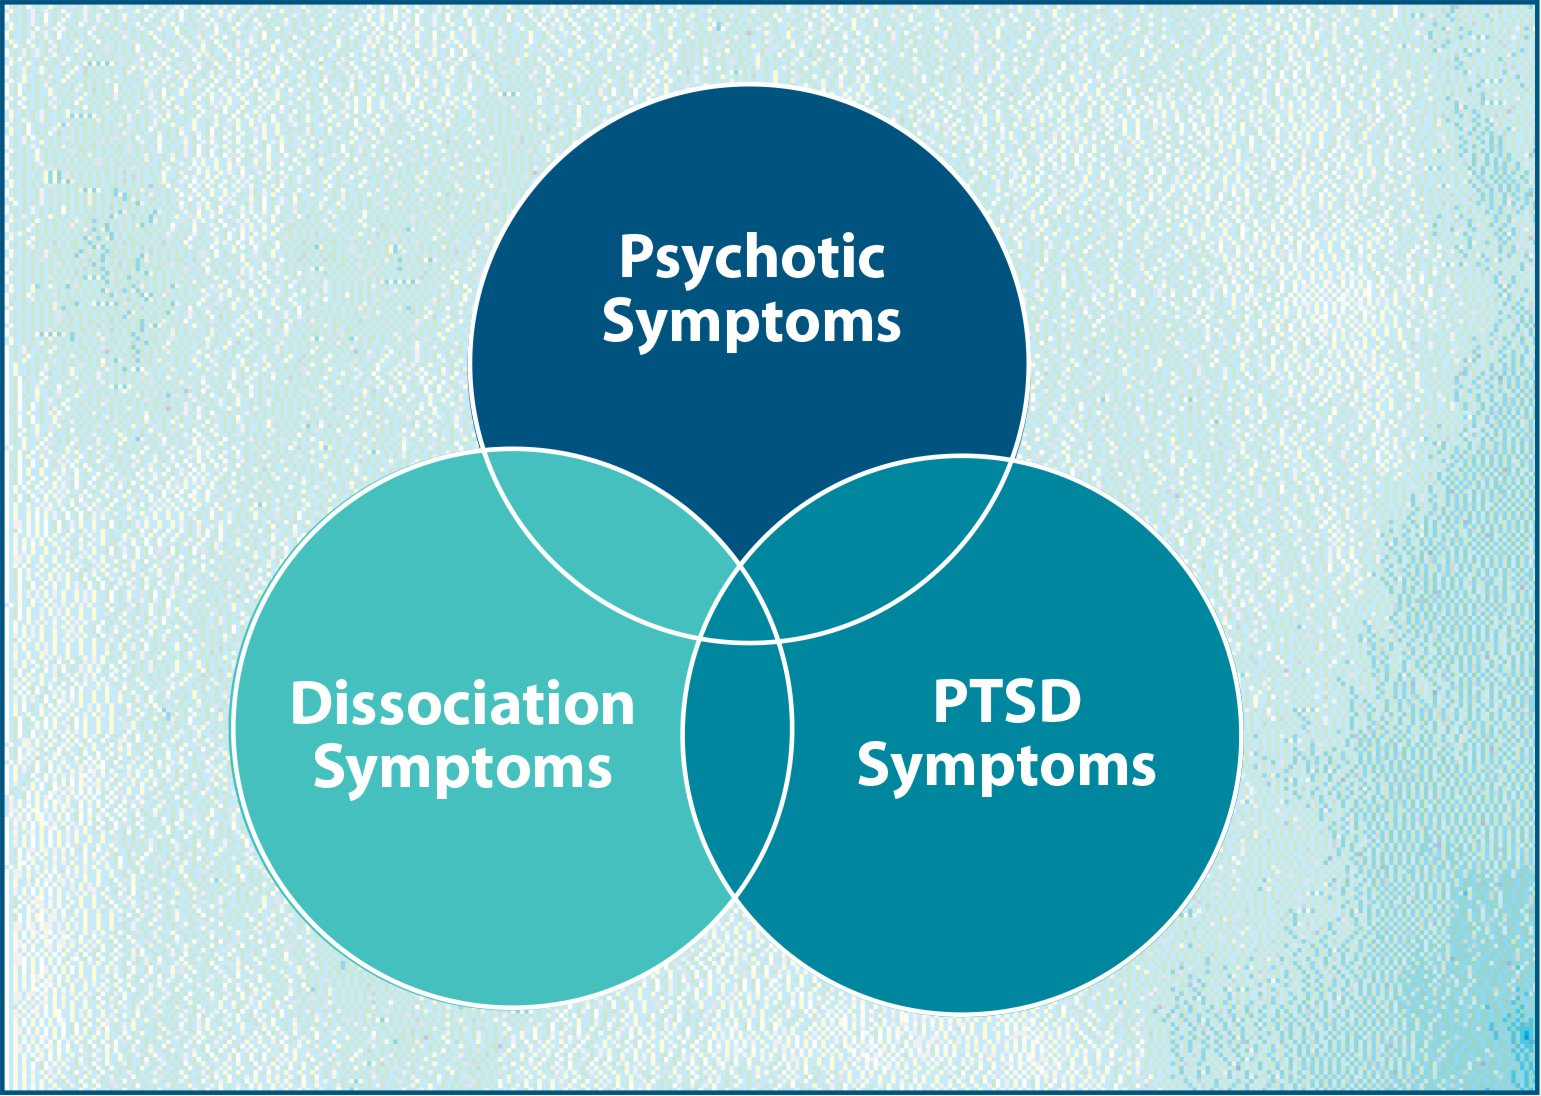 Overlapping symptoms of schizophrenia, posttraumatic stress disorder, and dissociation.